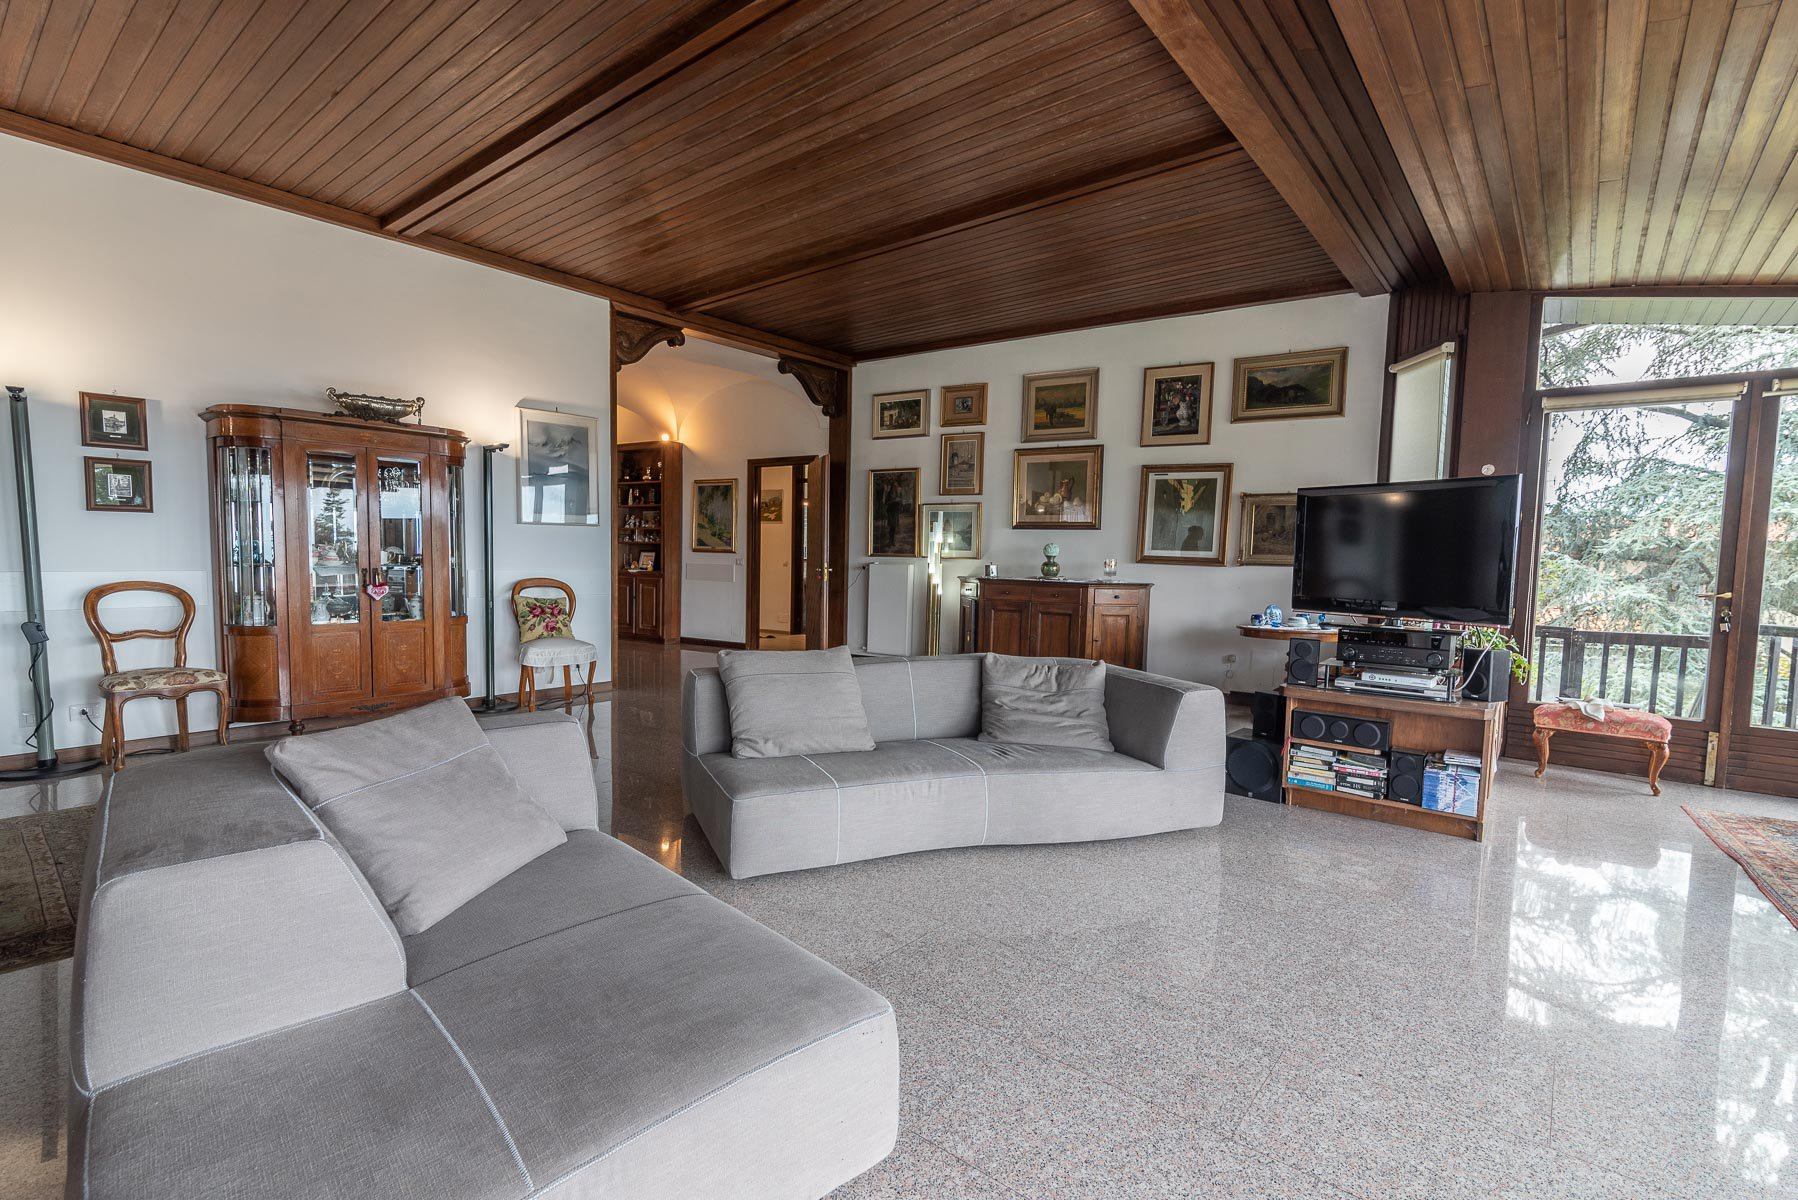 Elegant villa with gardenfor sale in Stresa - living room